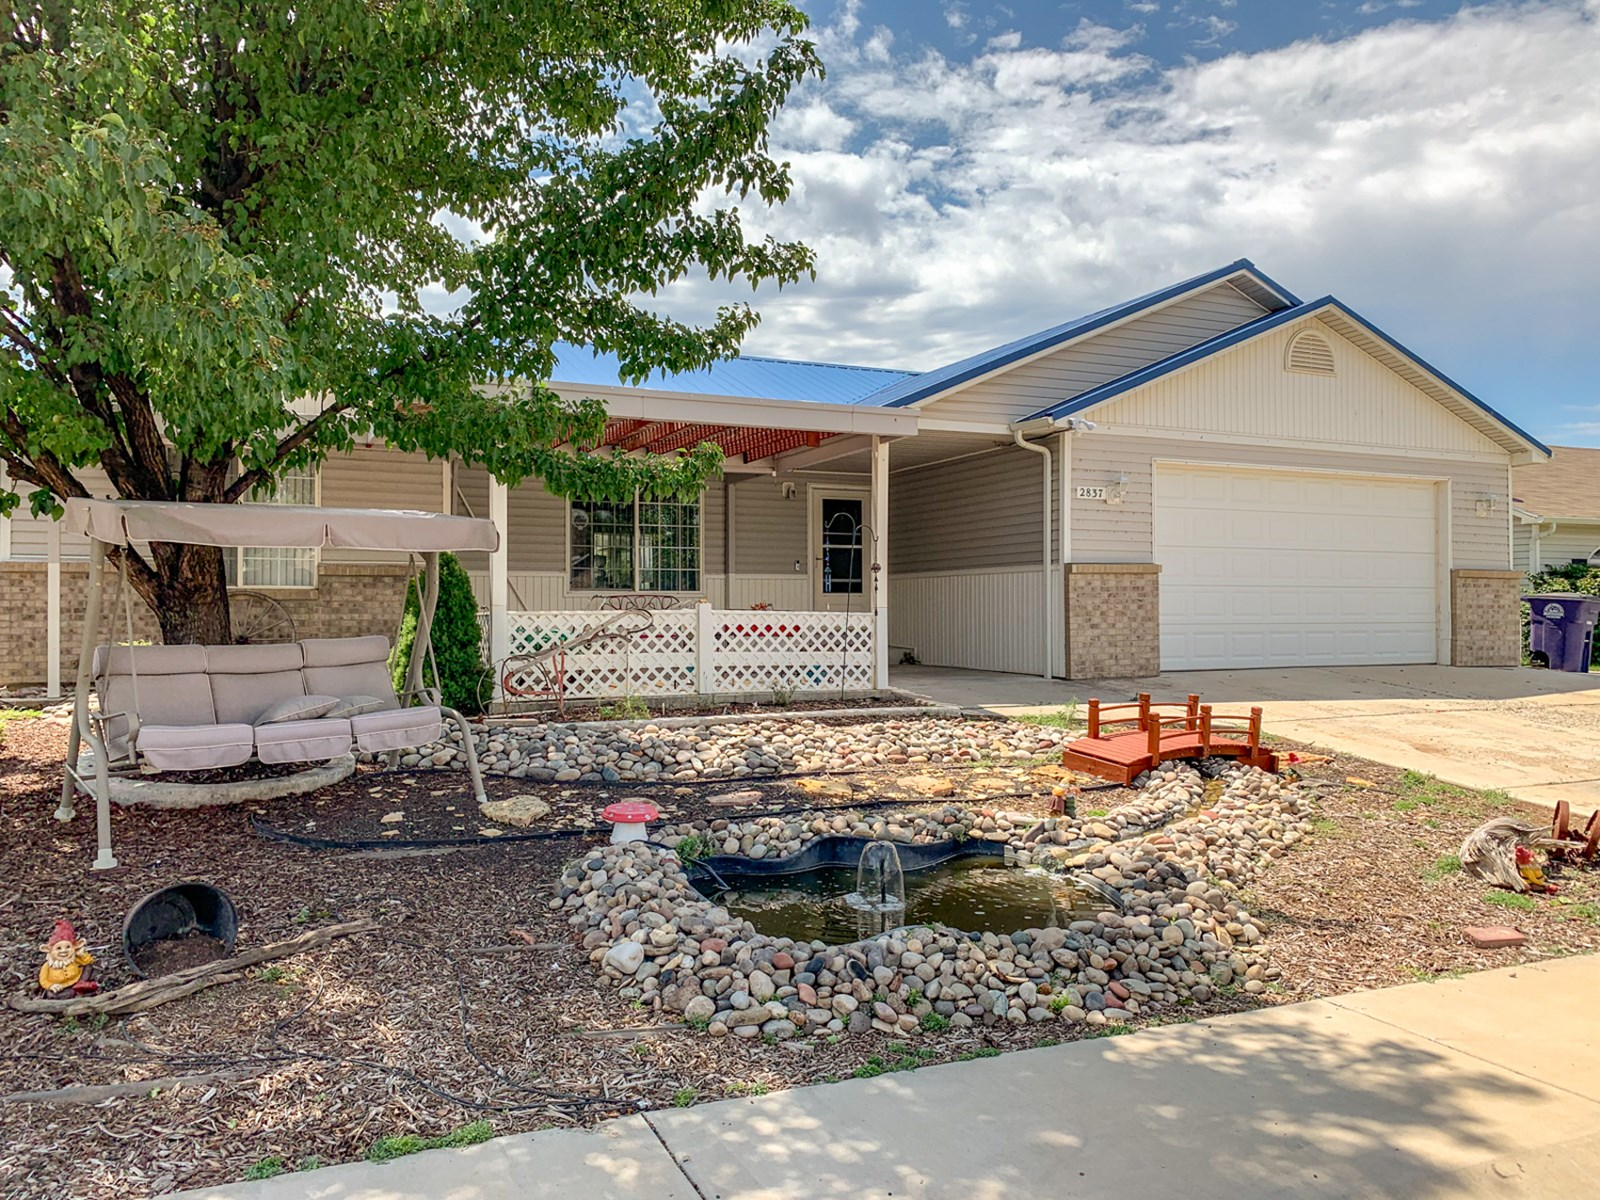 Home for Sale in Grand Junction, with Owned Solar Panels